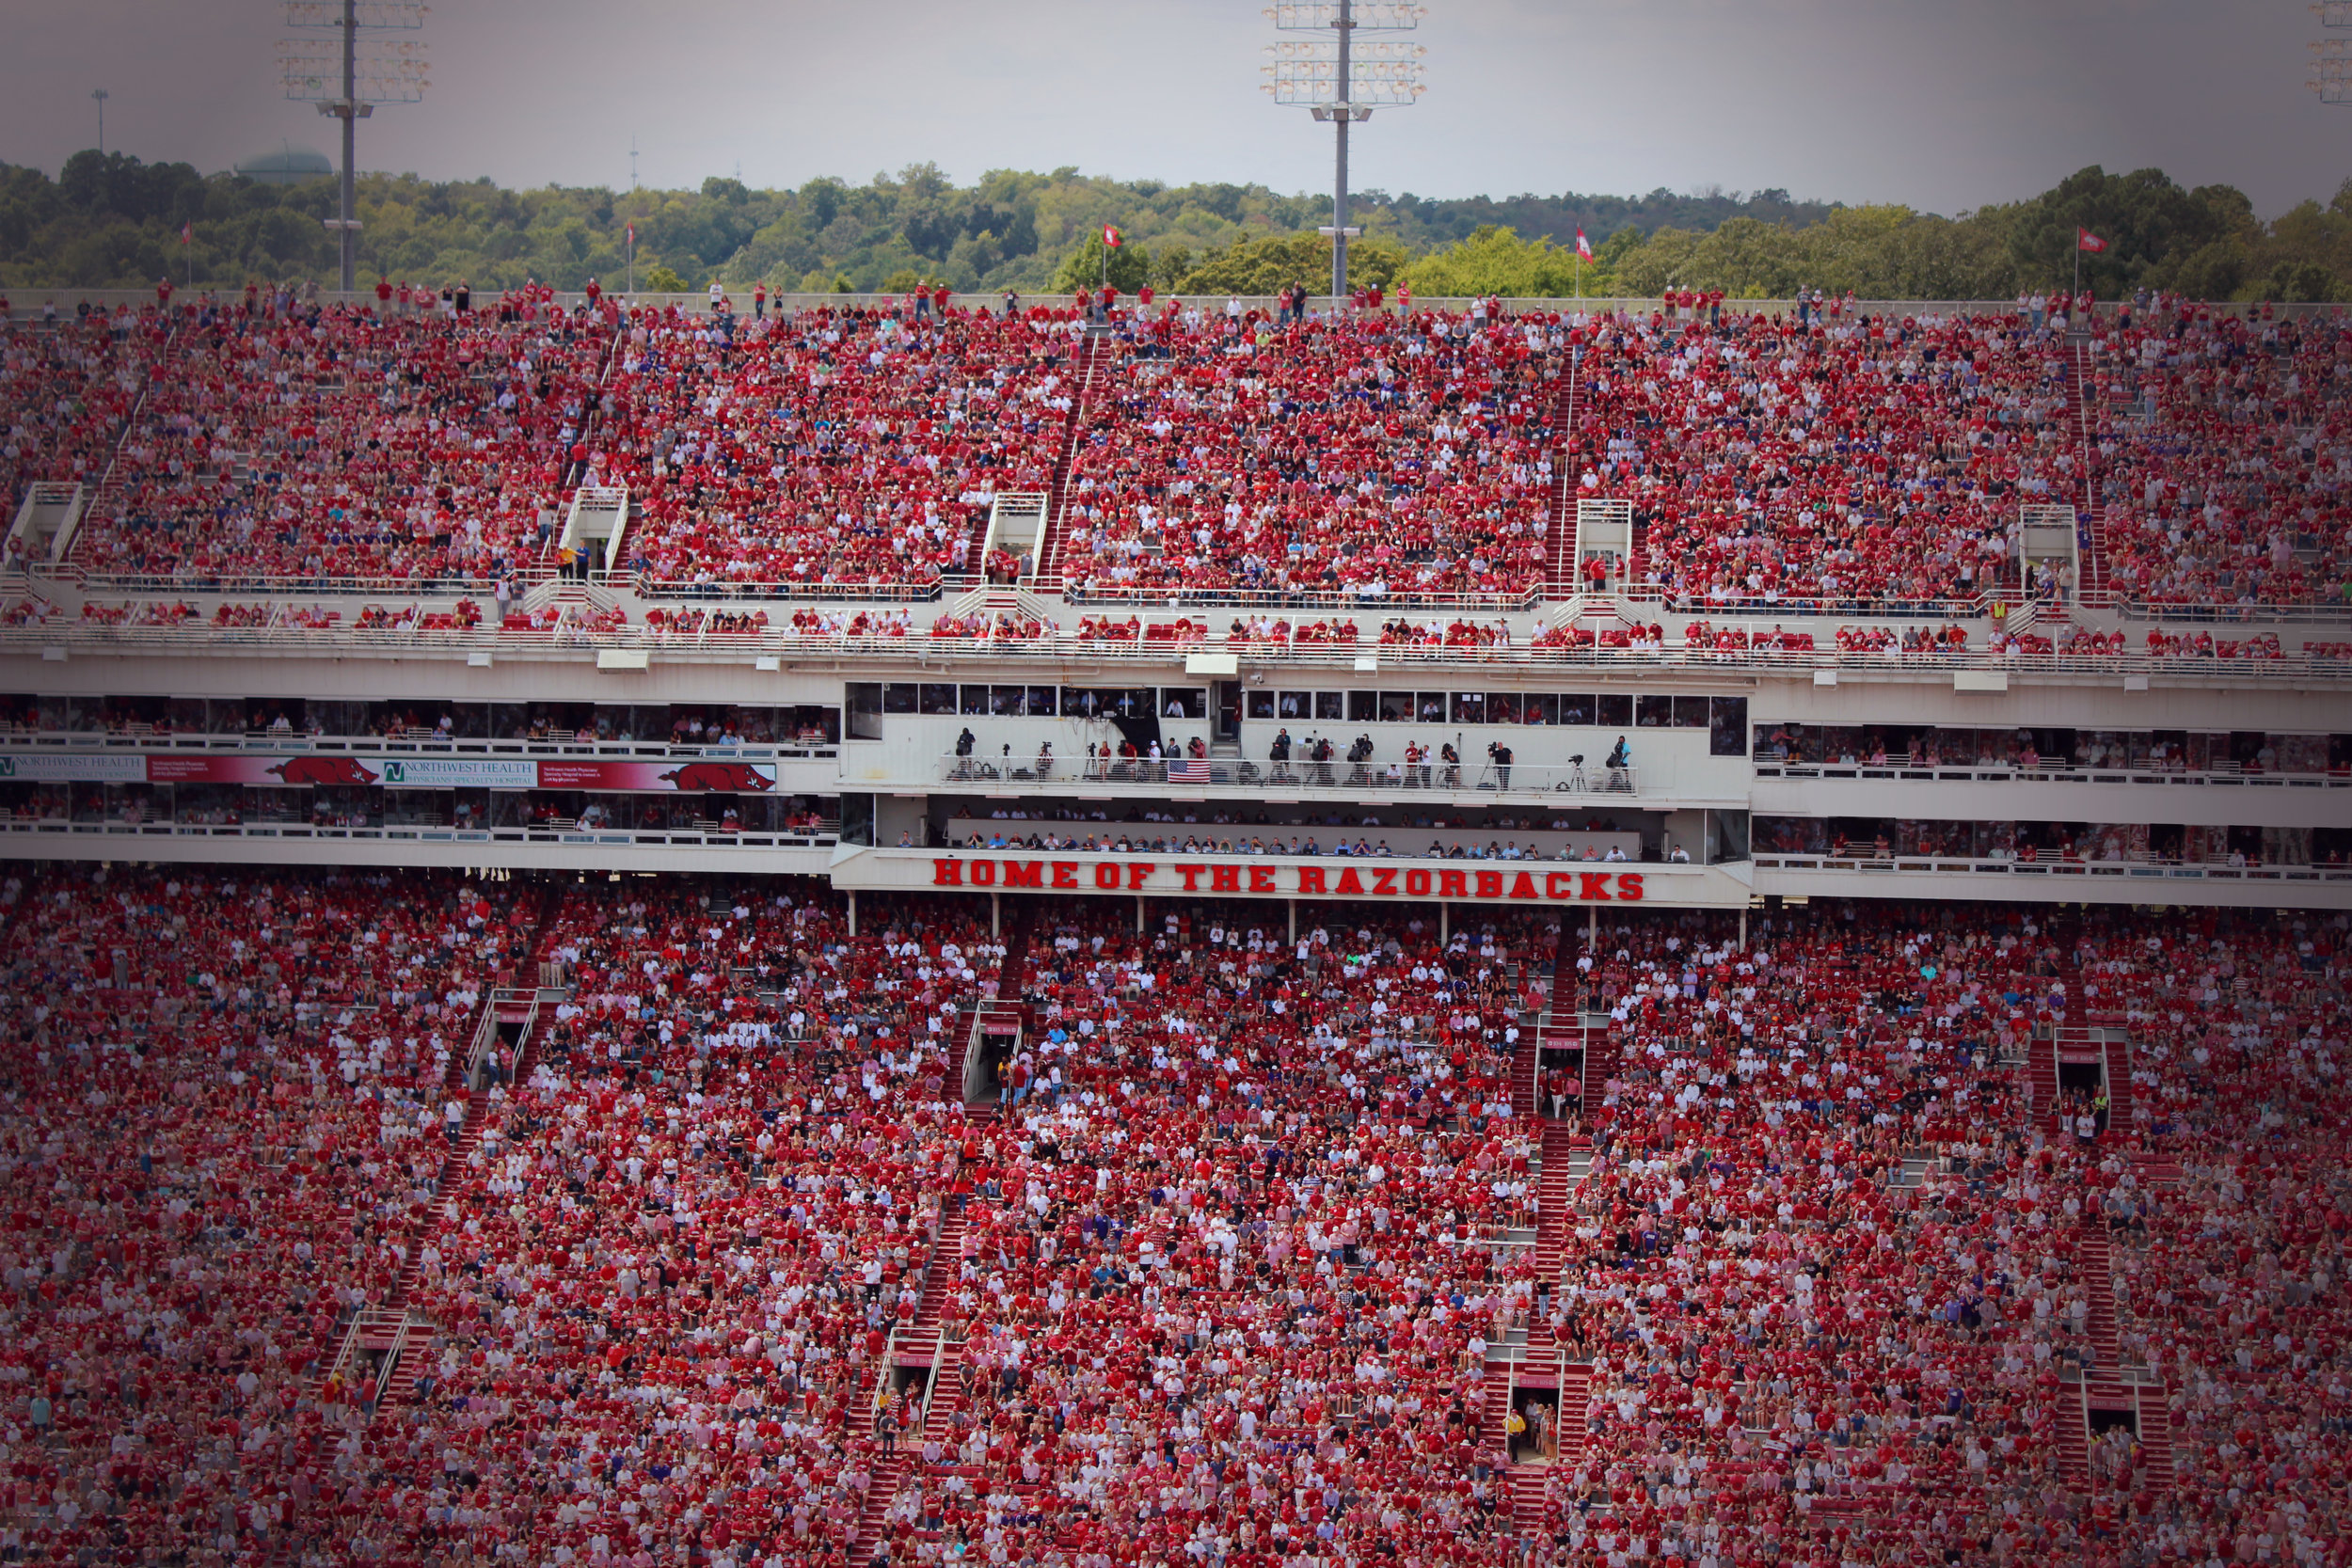 arkansas stadium2.jpg